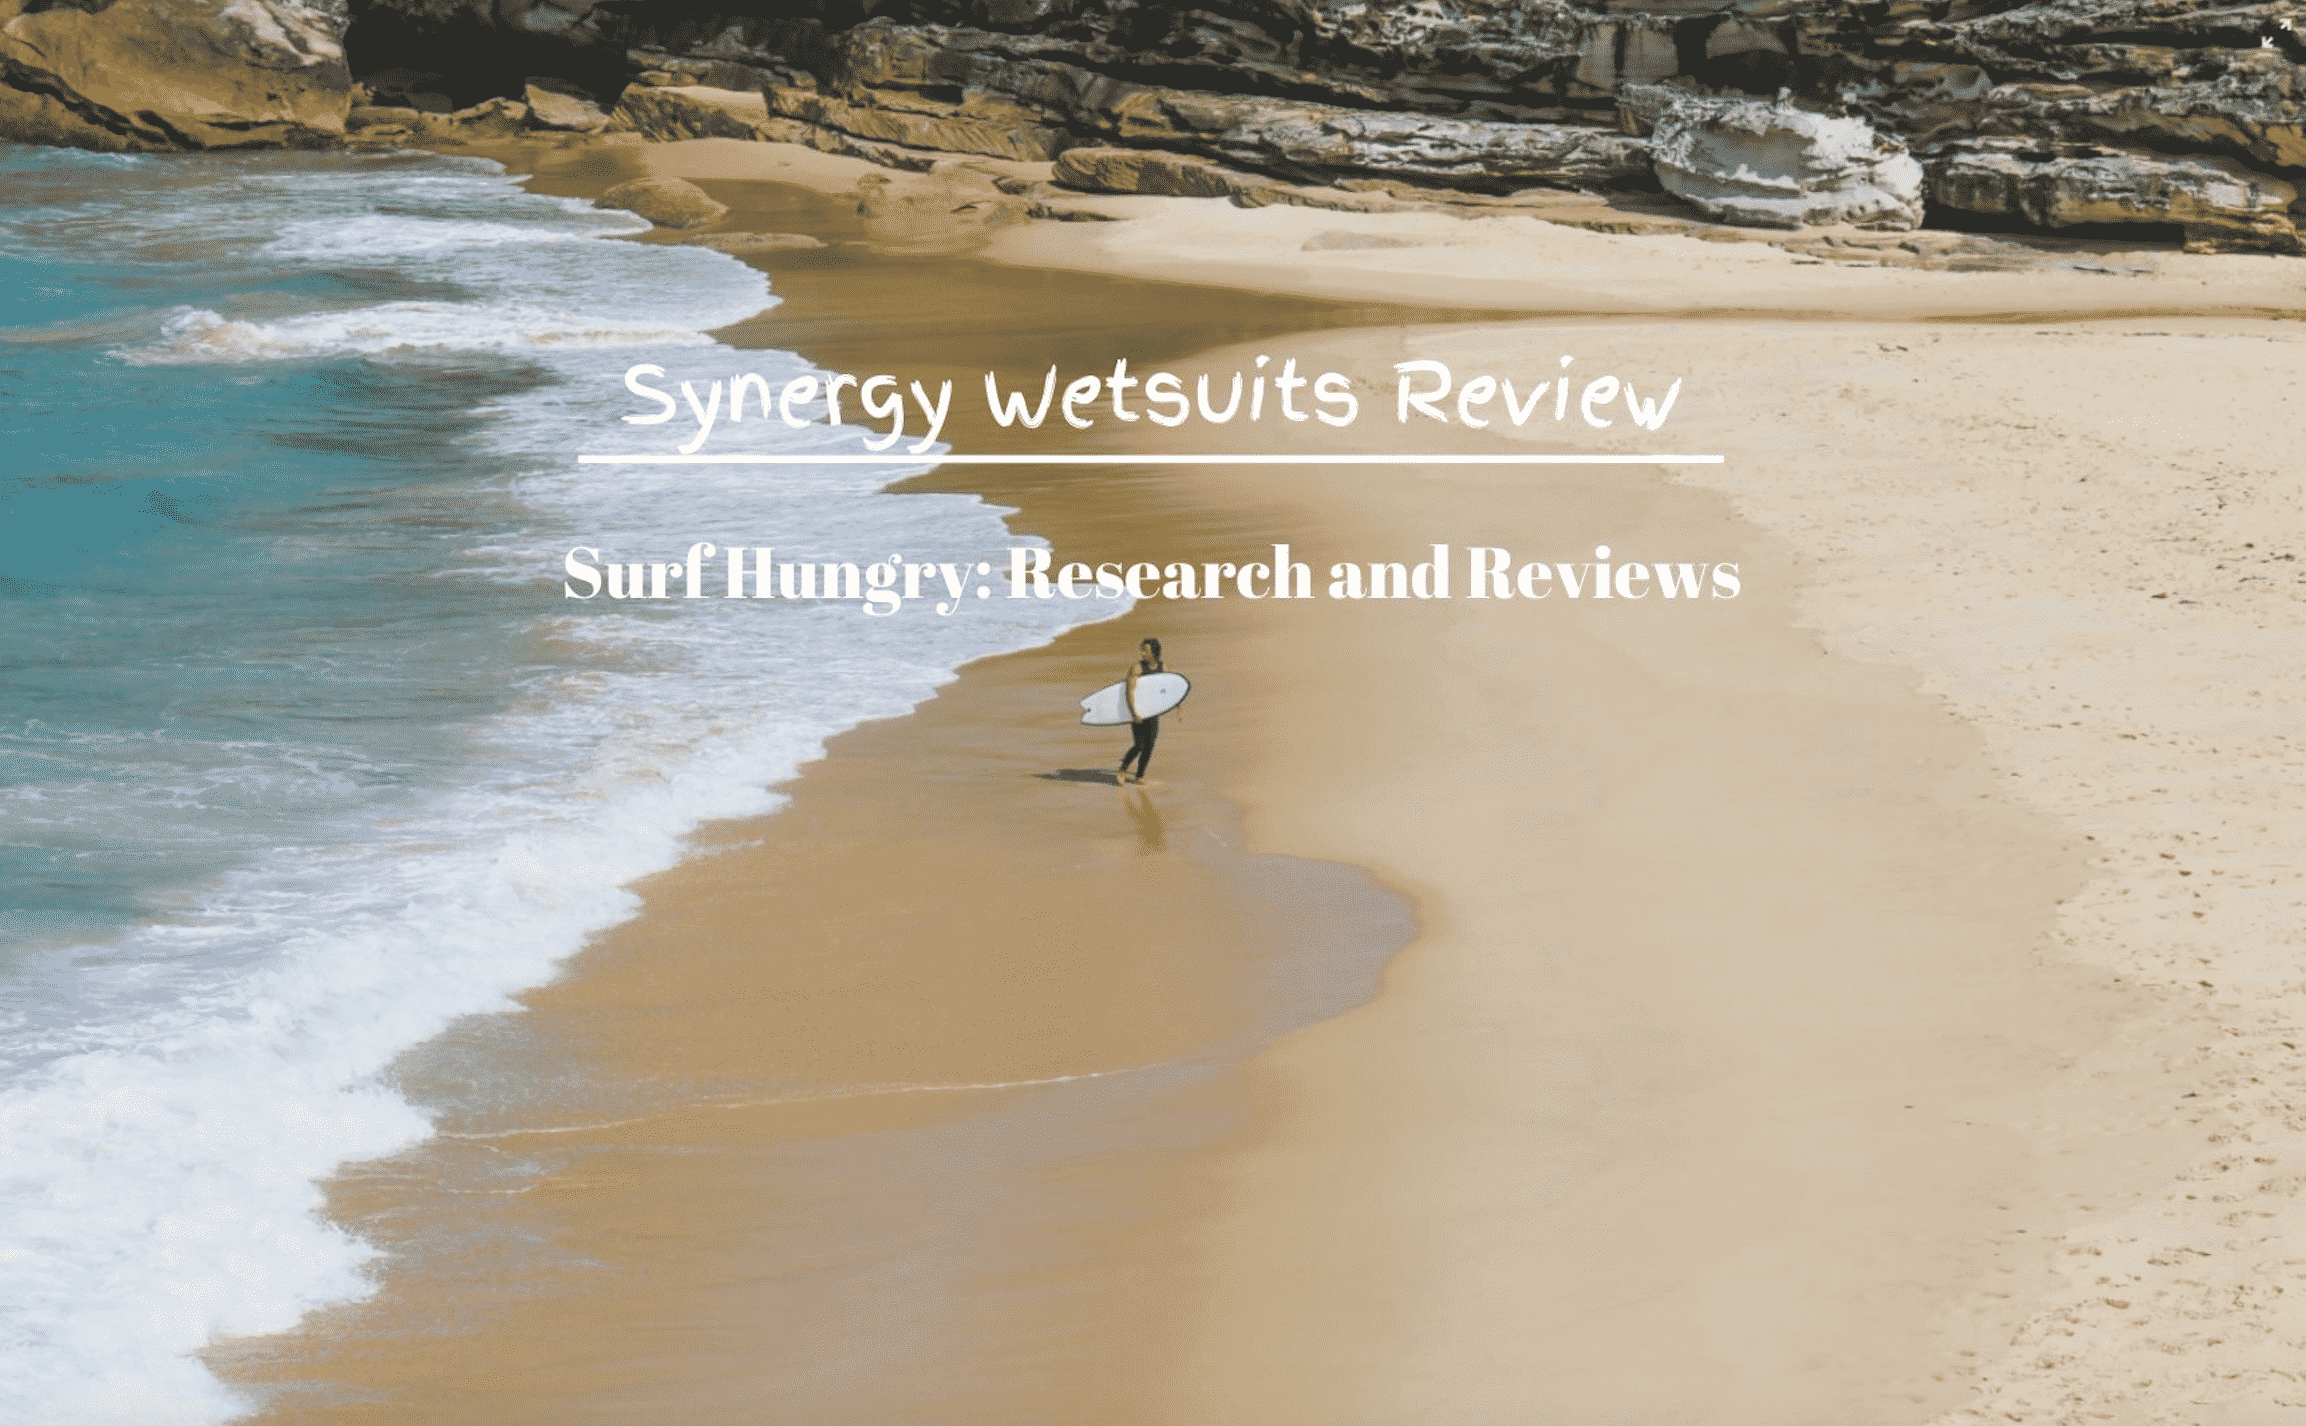 synergy wetsuits review